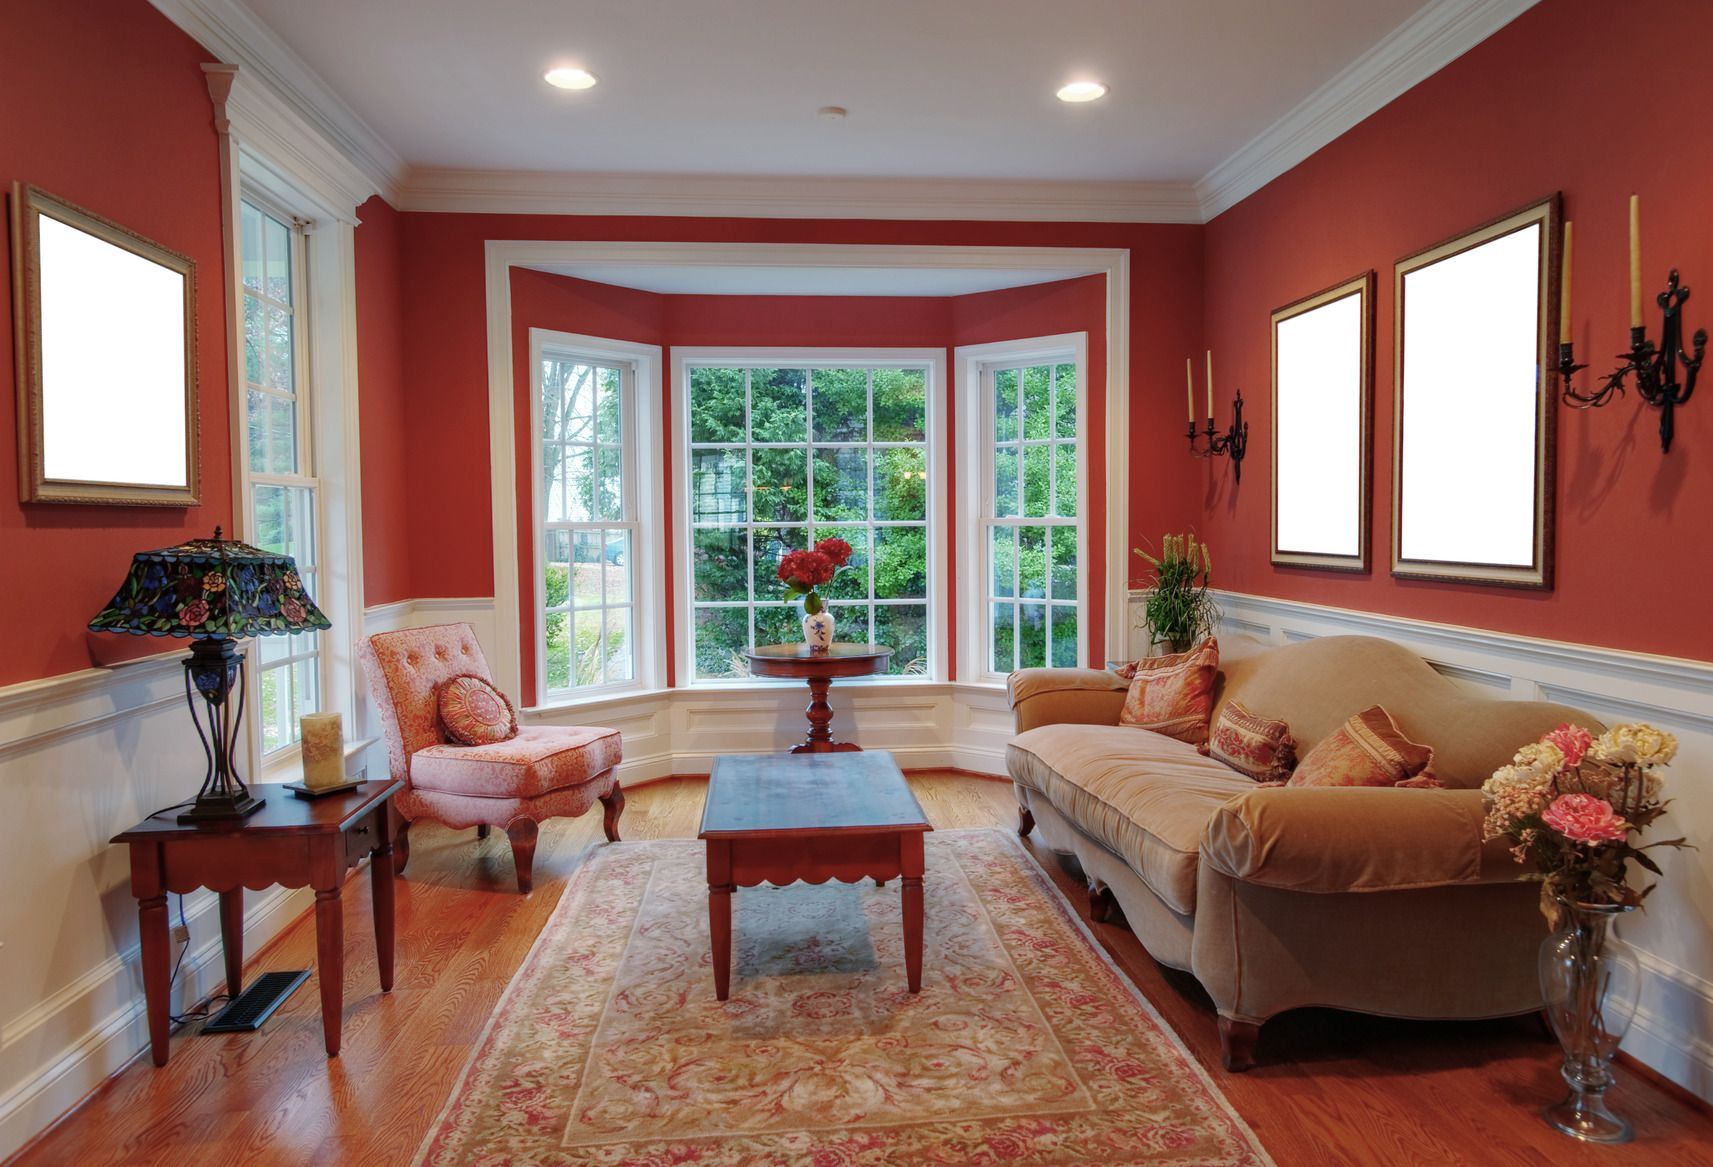 Lovely Bay Window Idea in Living Room with Red Shades